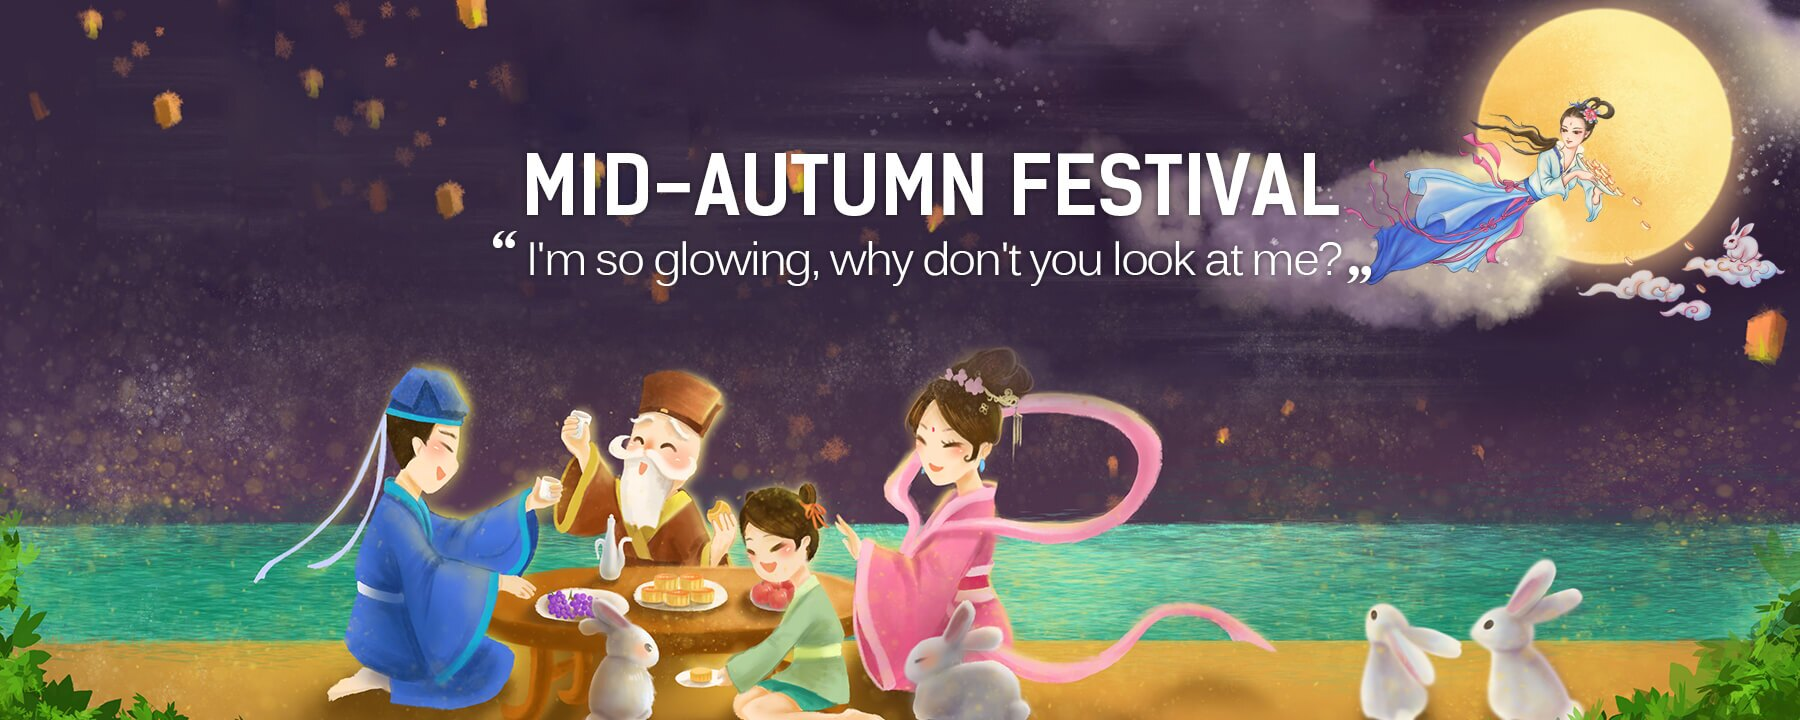 Moon Cake Festival 2020 Mid Autumn Festival Dates in 2019, 2020, 2021,